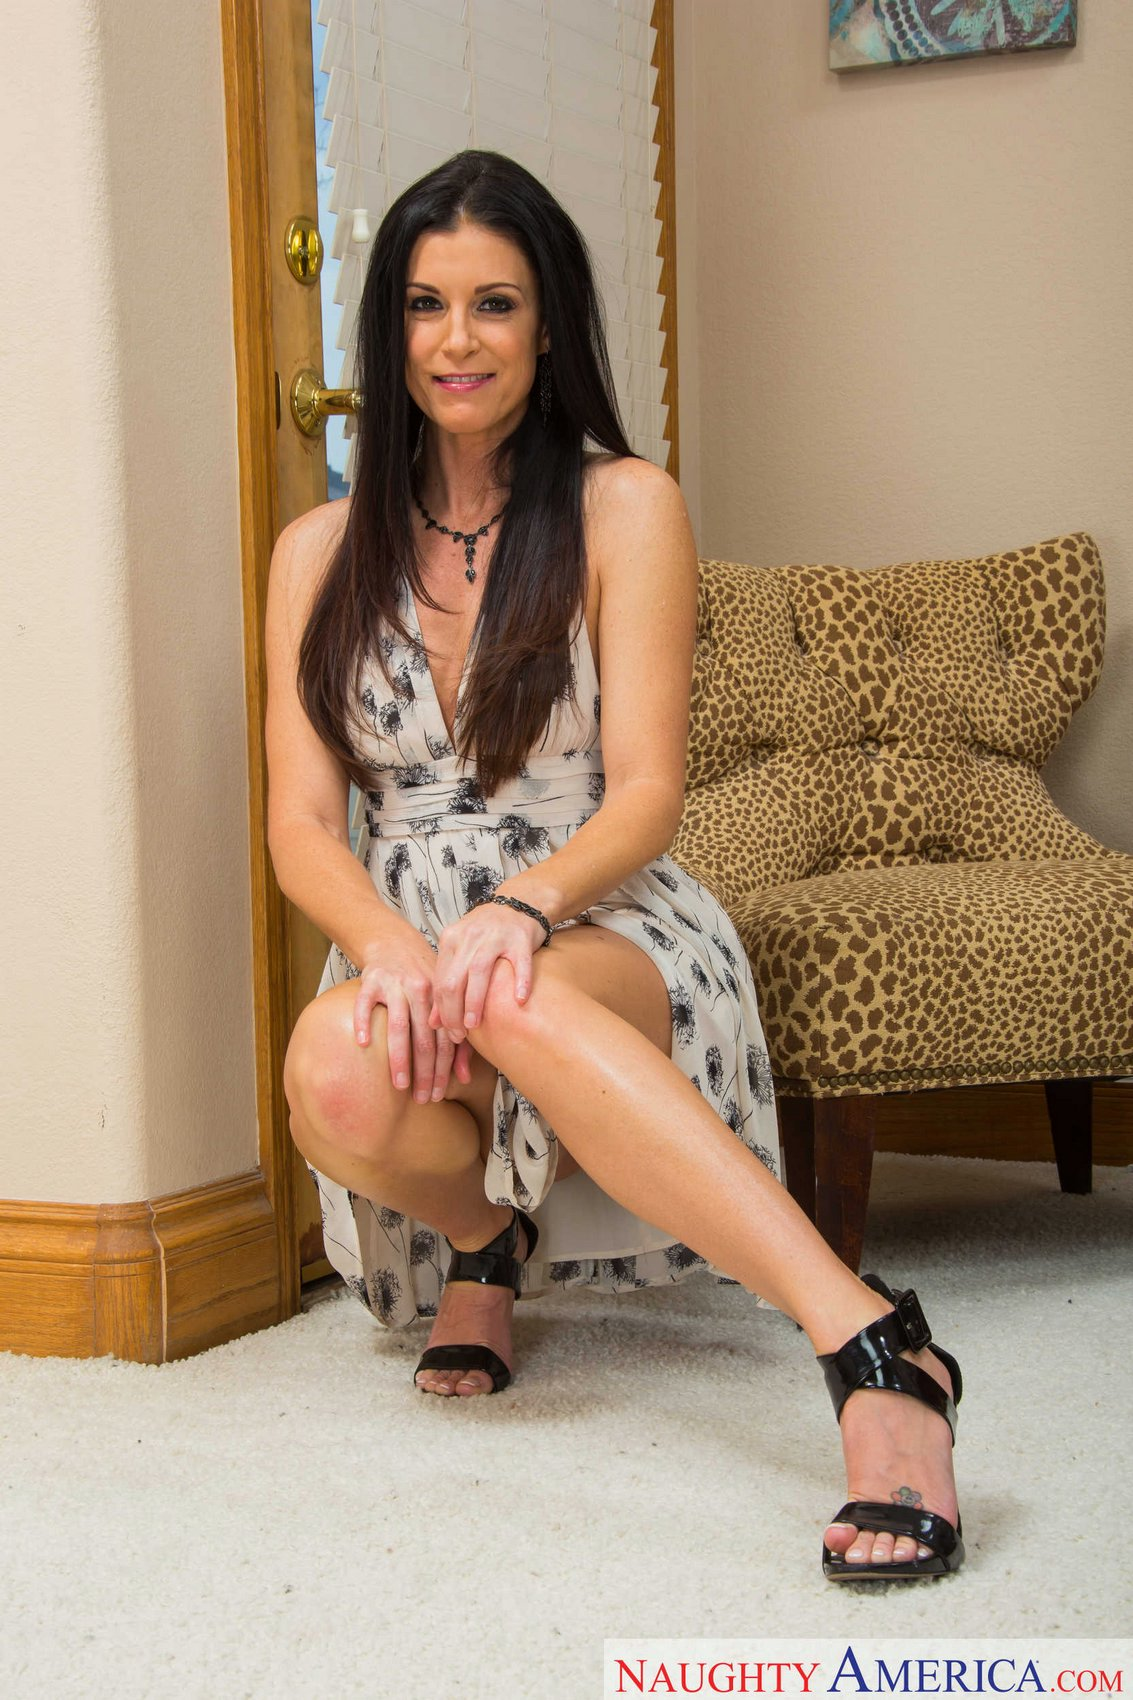 Sexy hardcore mom india summer - 1 part 2